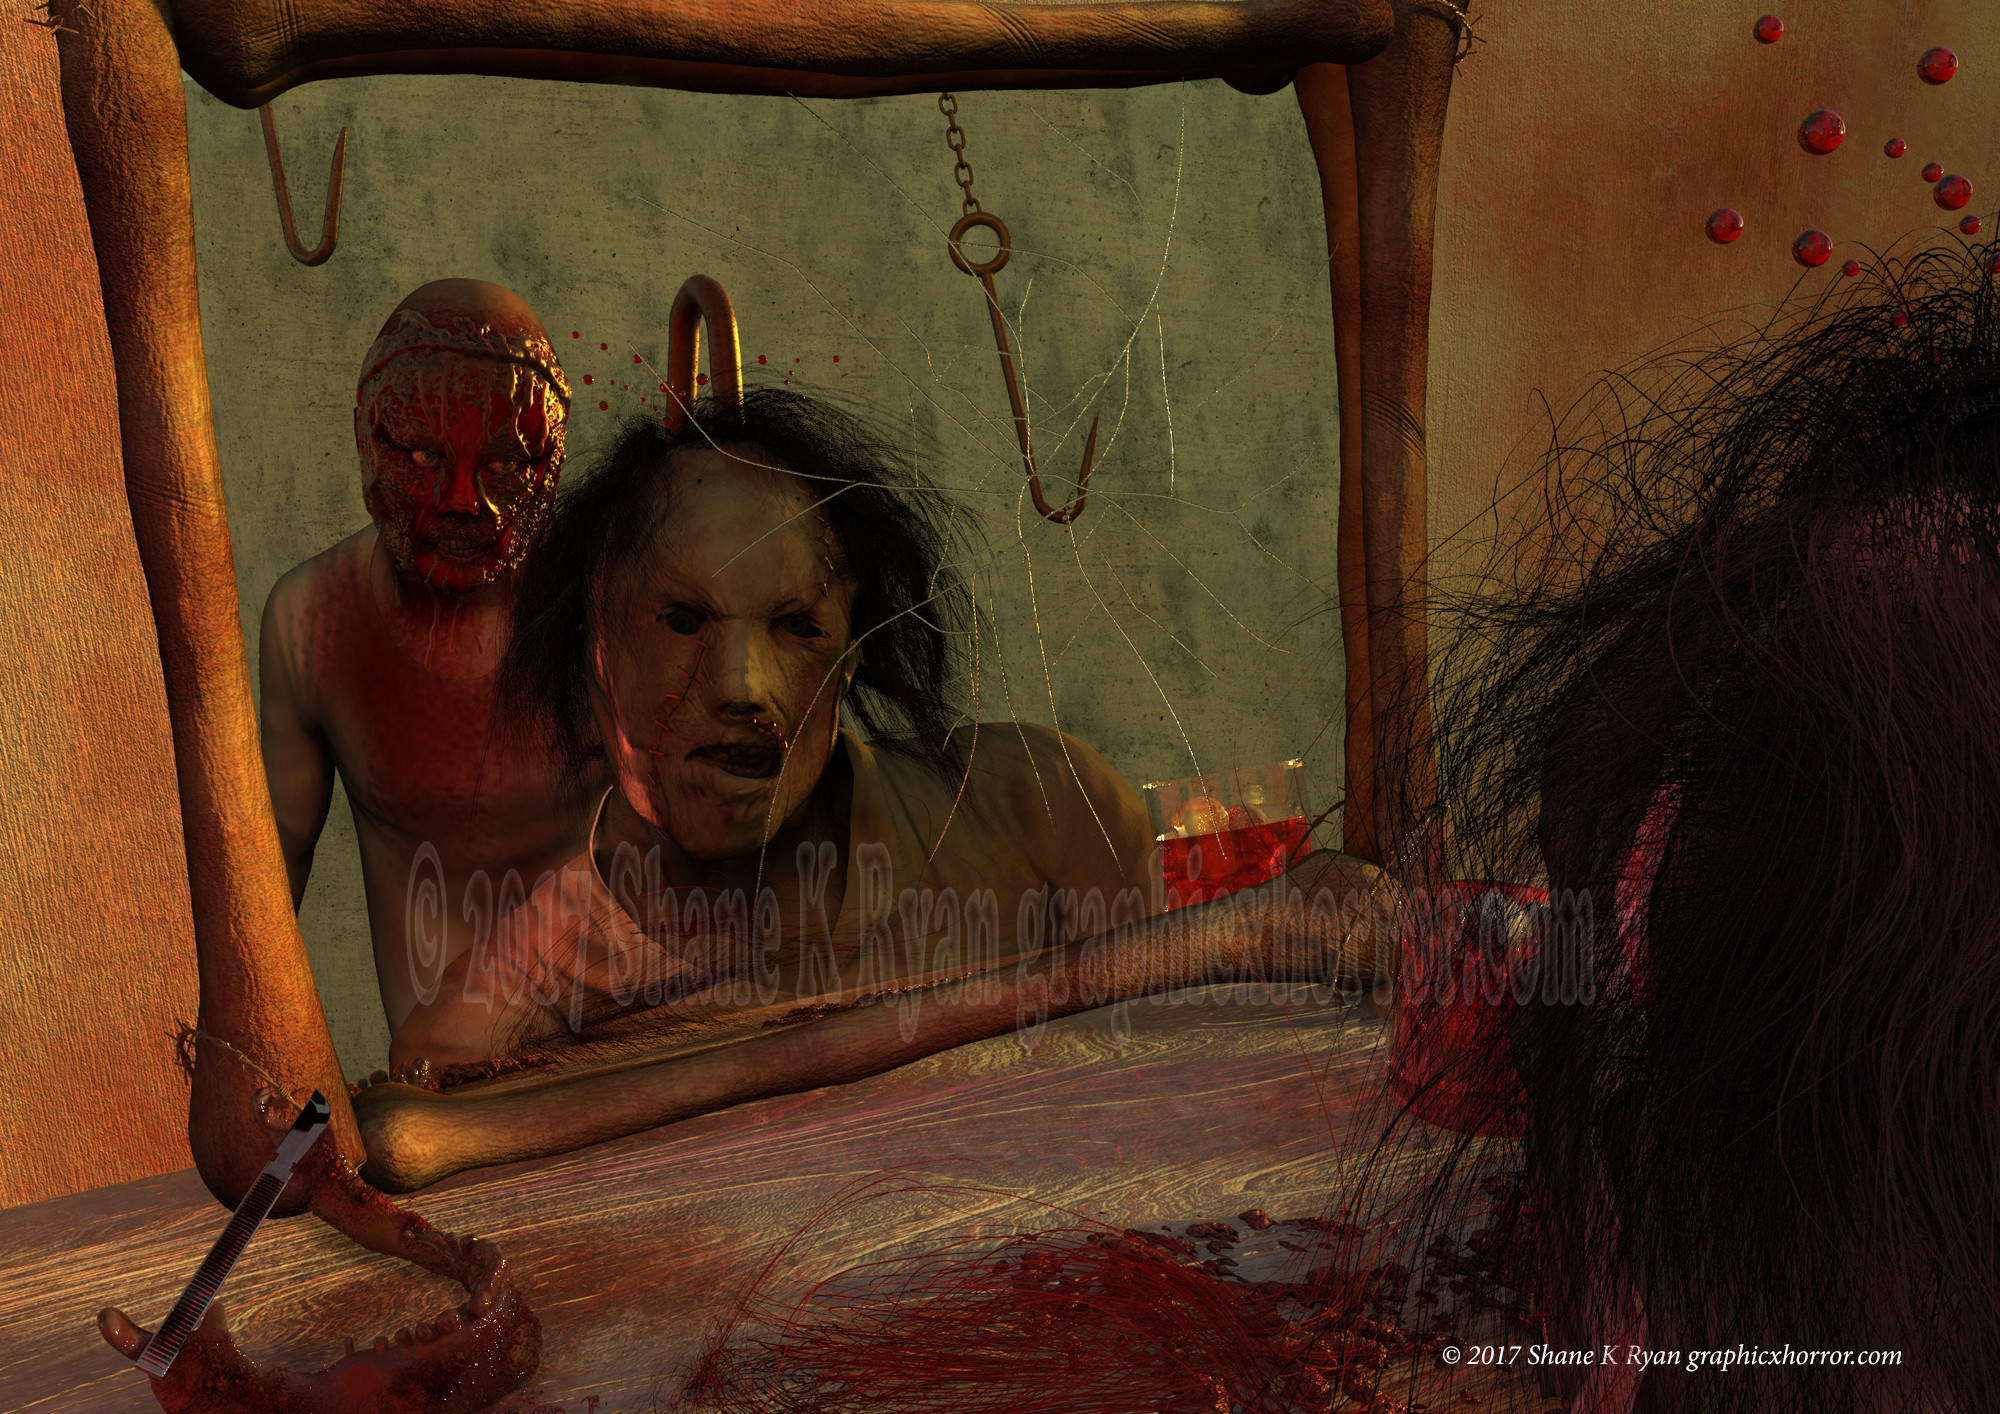 Leatherface's own vanity would be his down fall while admiring his new face.